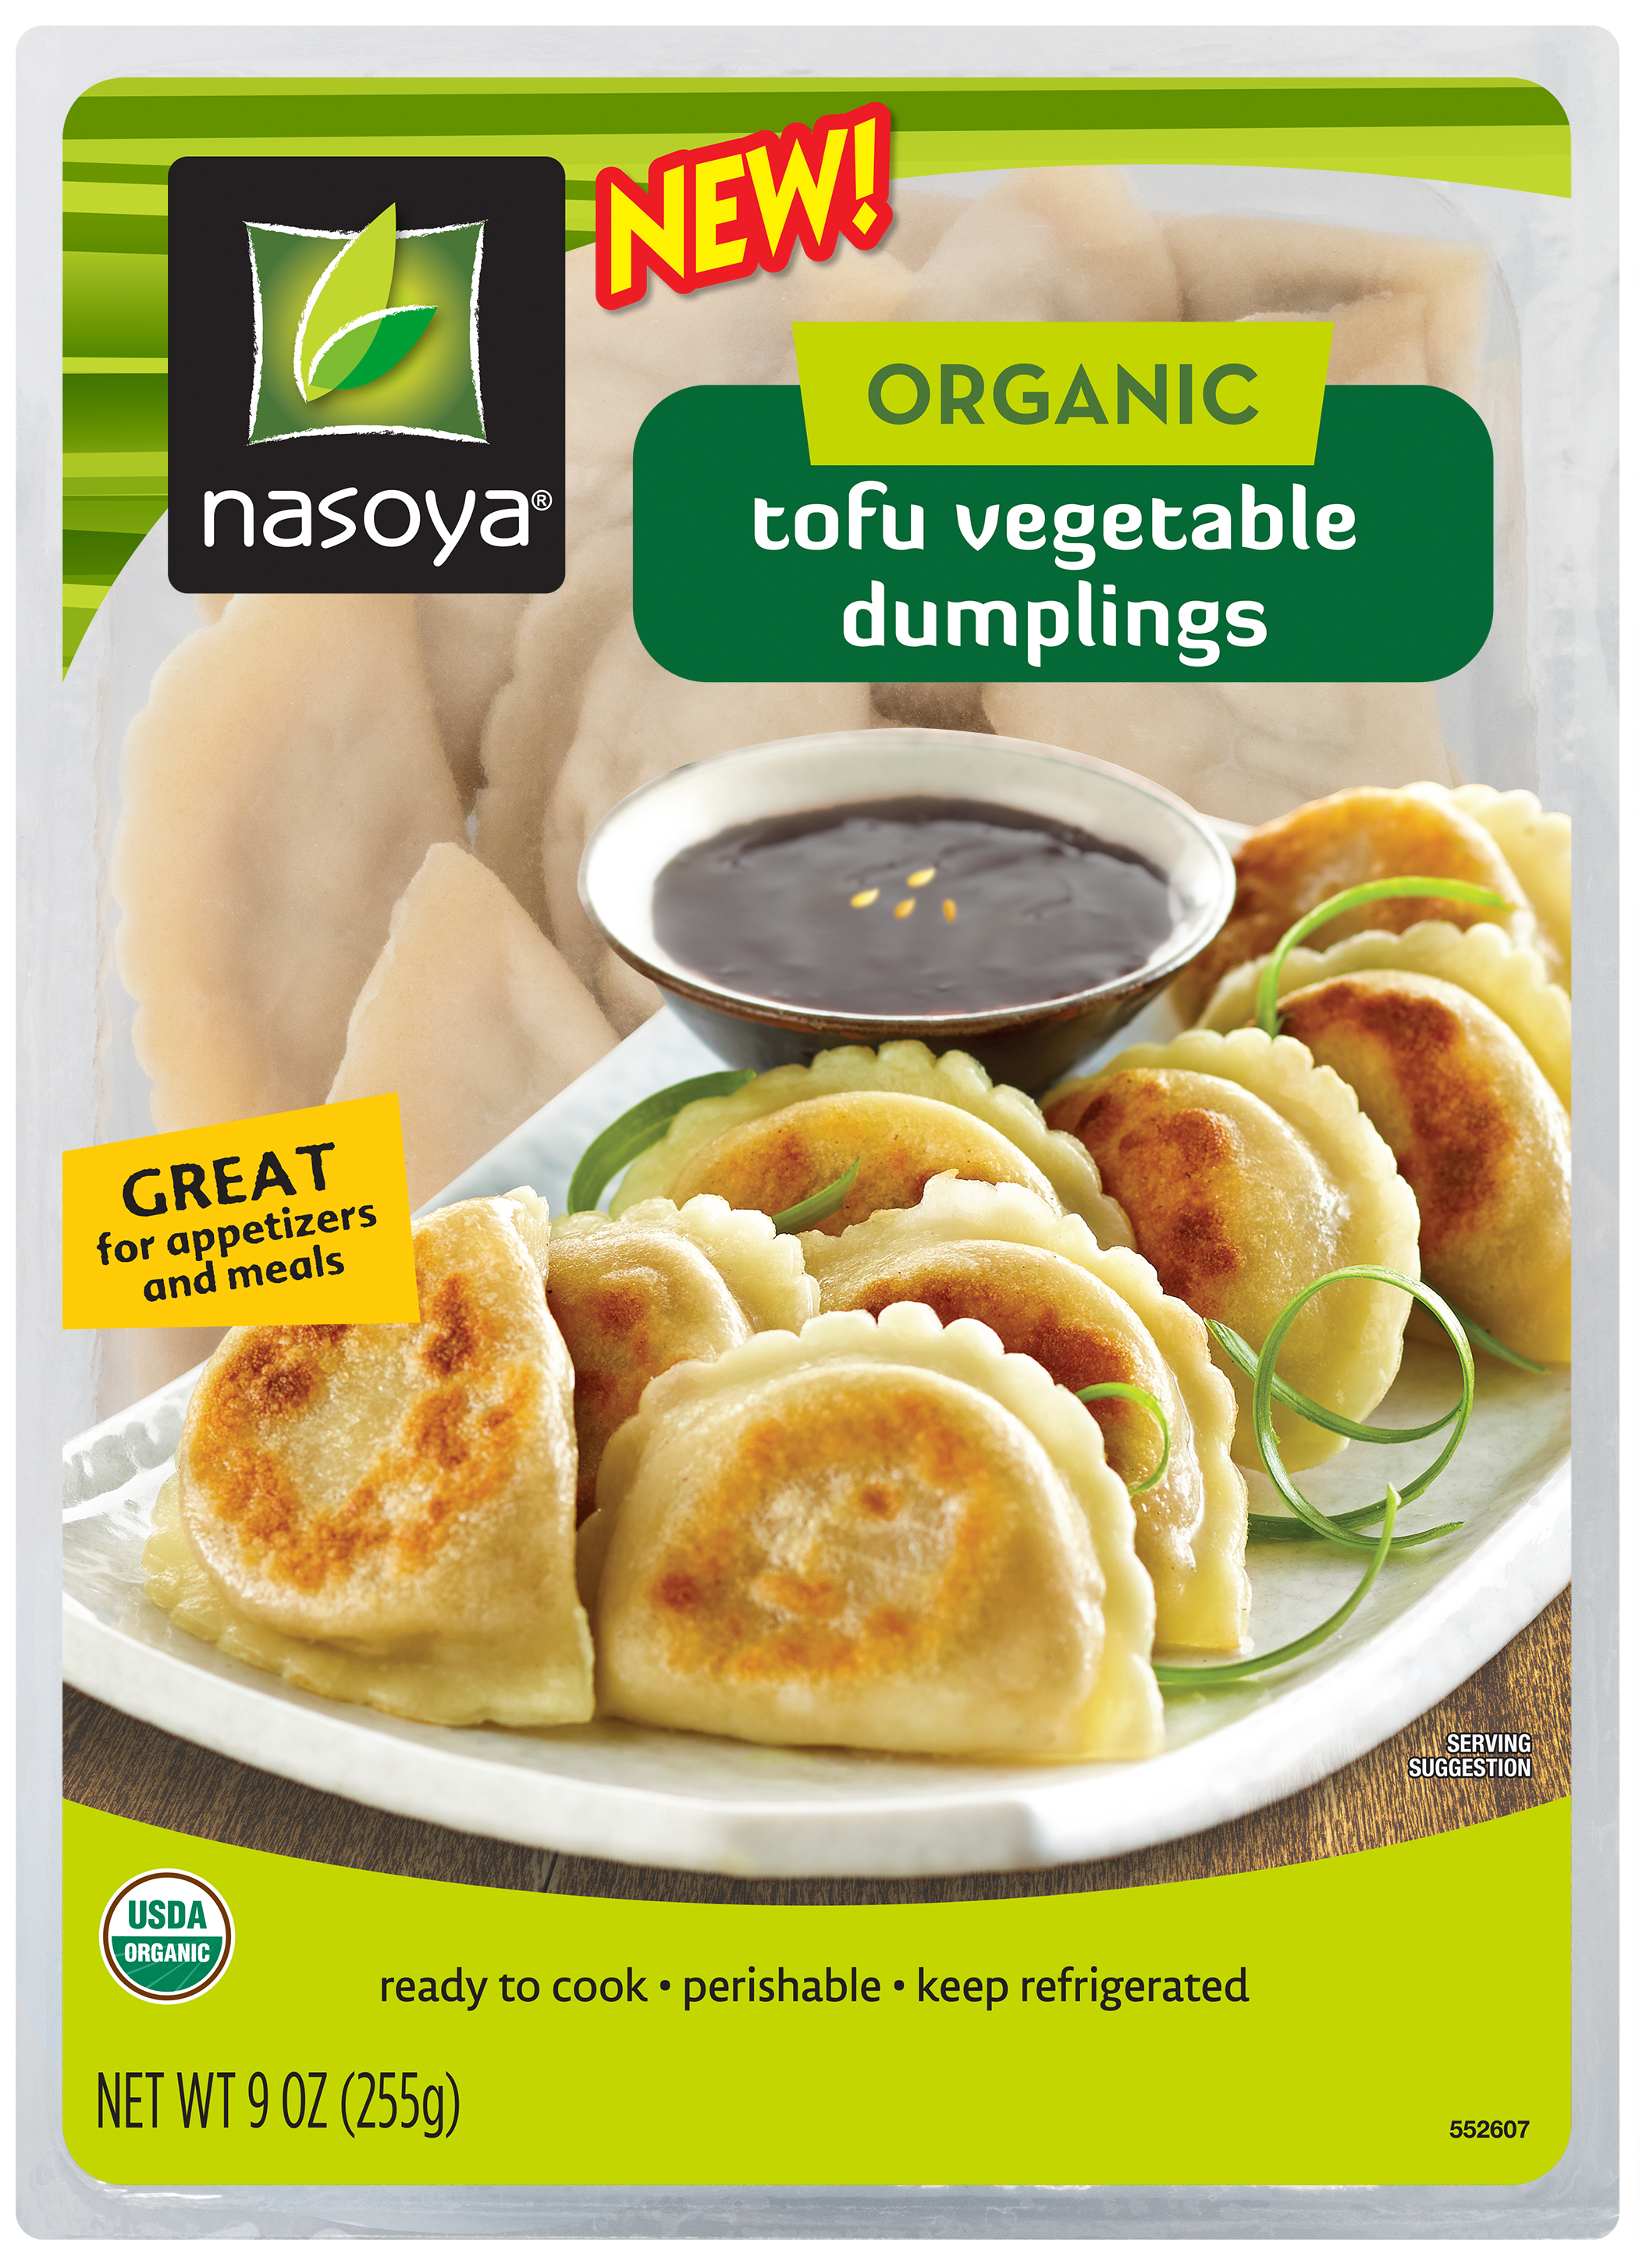 Nasoya: Organic Tofu Vegetable Dumplings